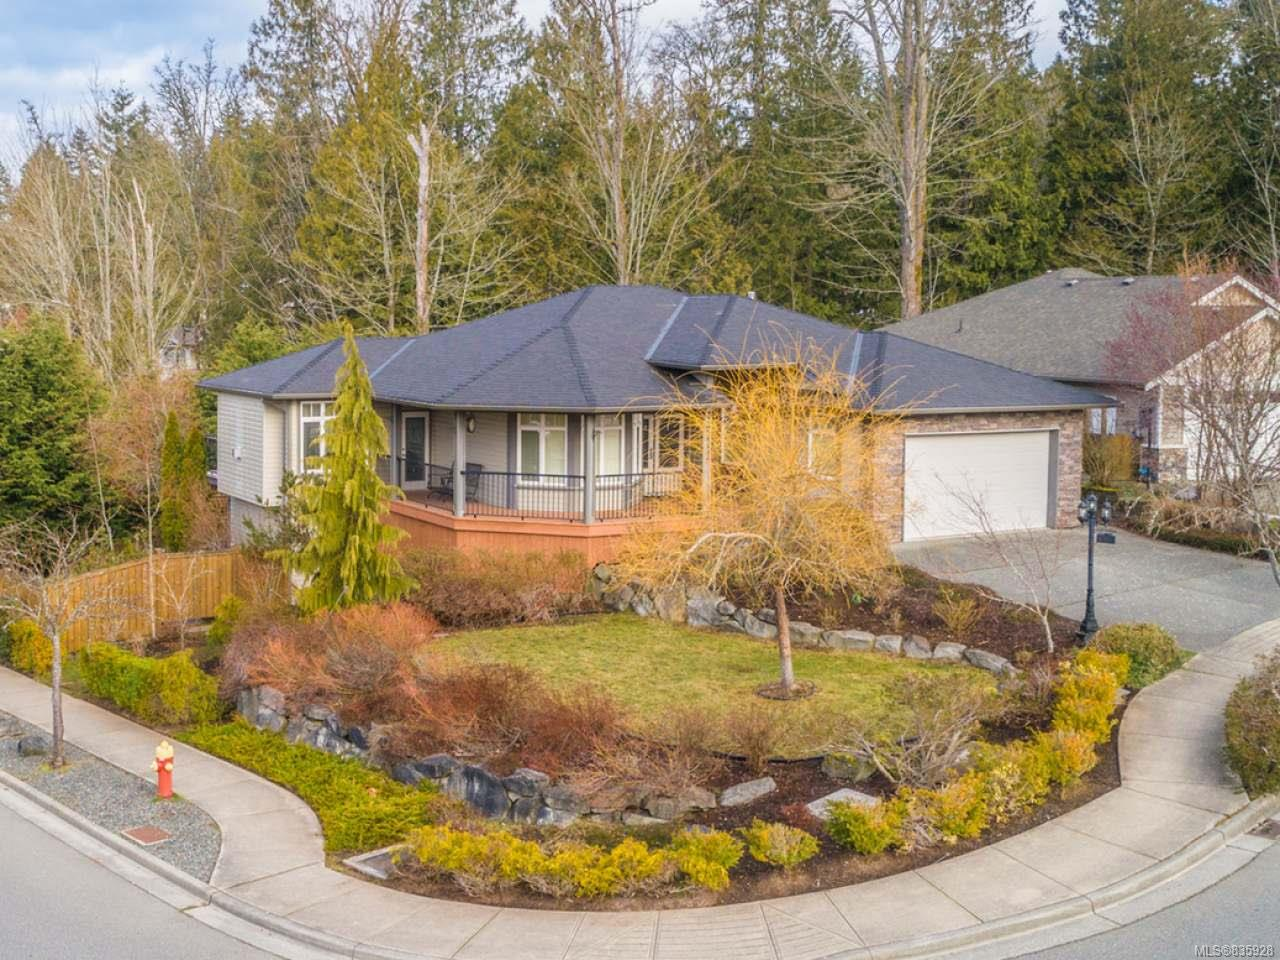 FEATURED LISTING: 3337 Willowmere Cres NANAIMO